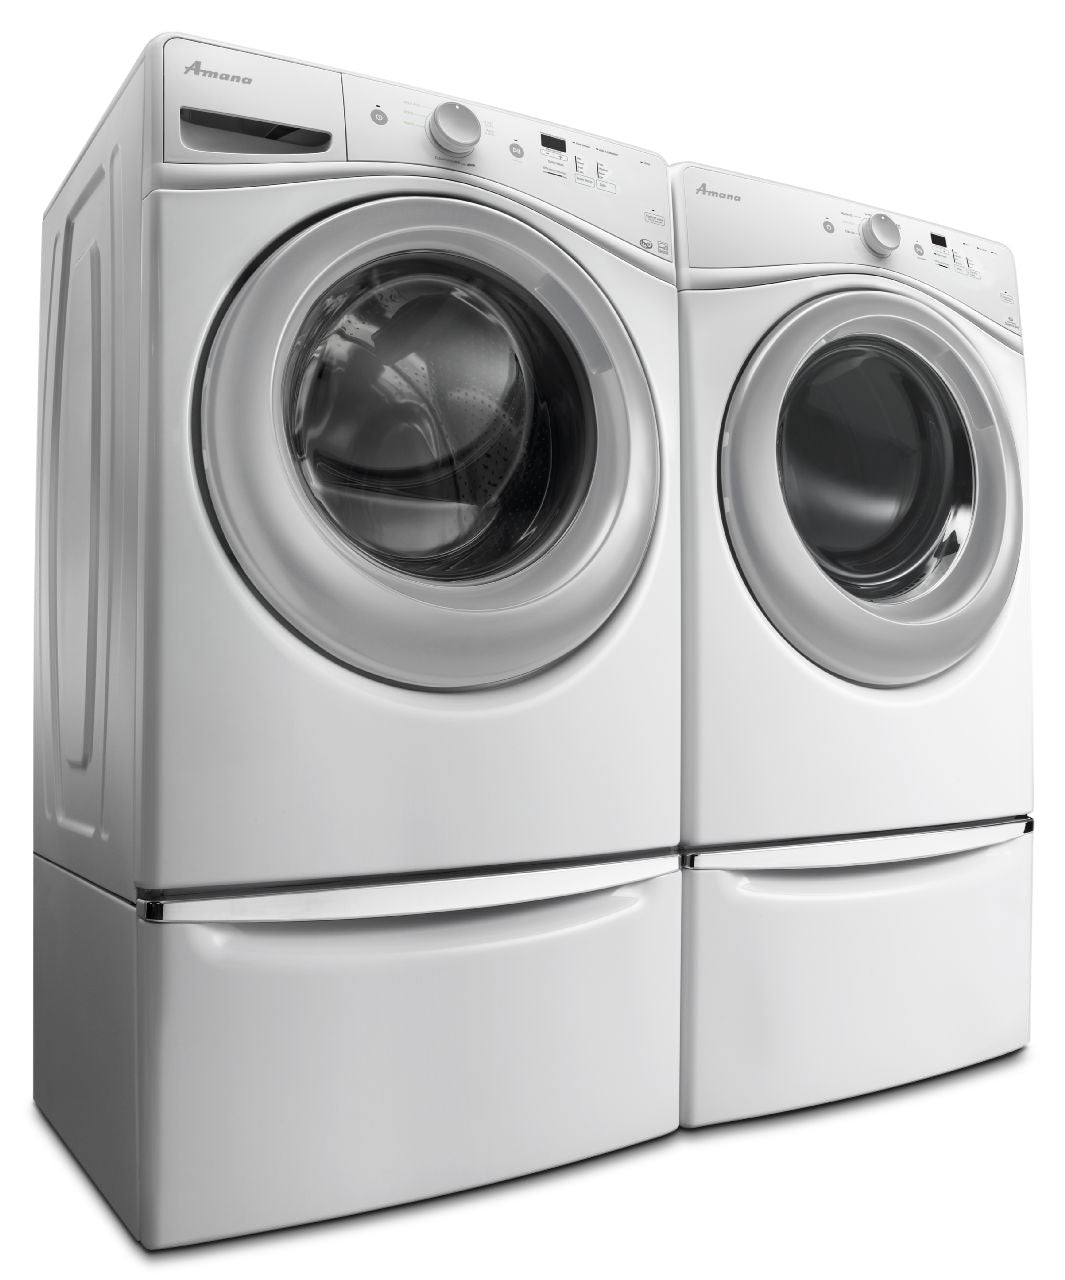 Amana 4 8 Cu  Ft  Front Load Washer and 7 4 Cu  Ft  Electric Dryer - White